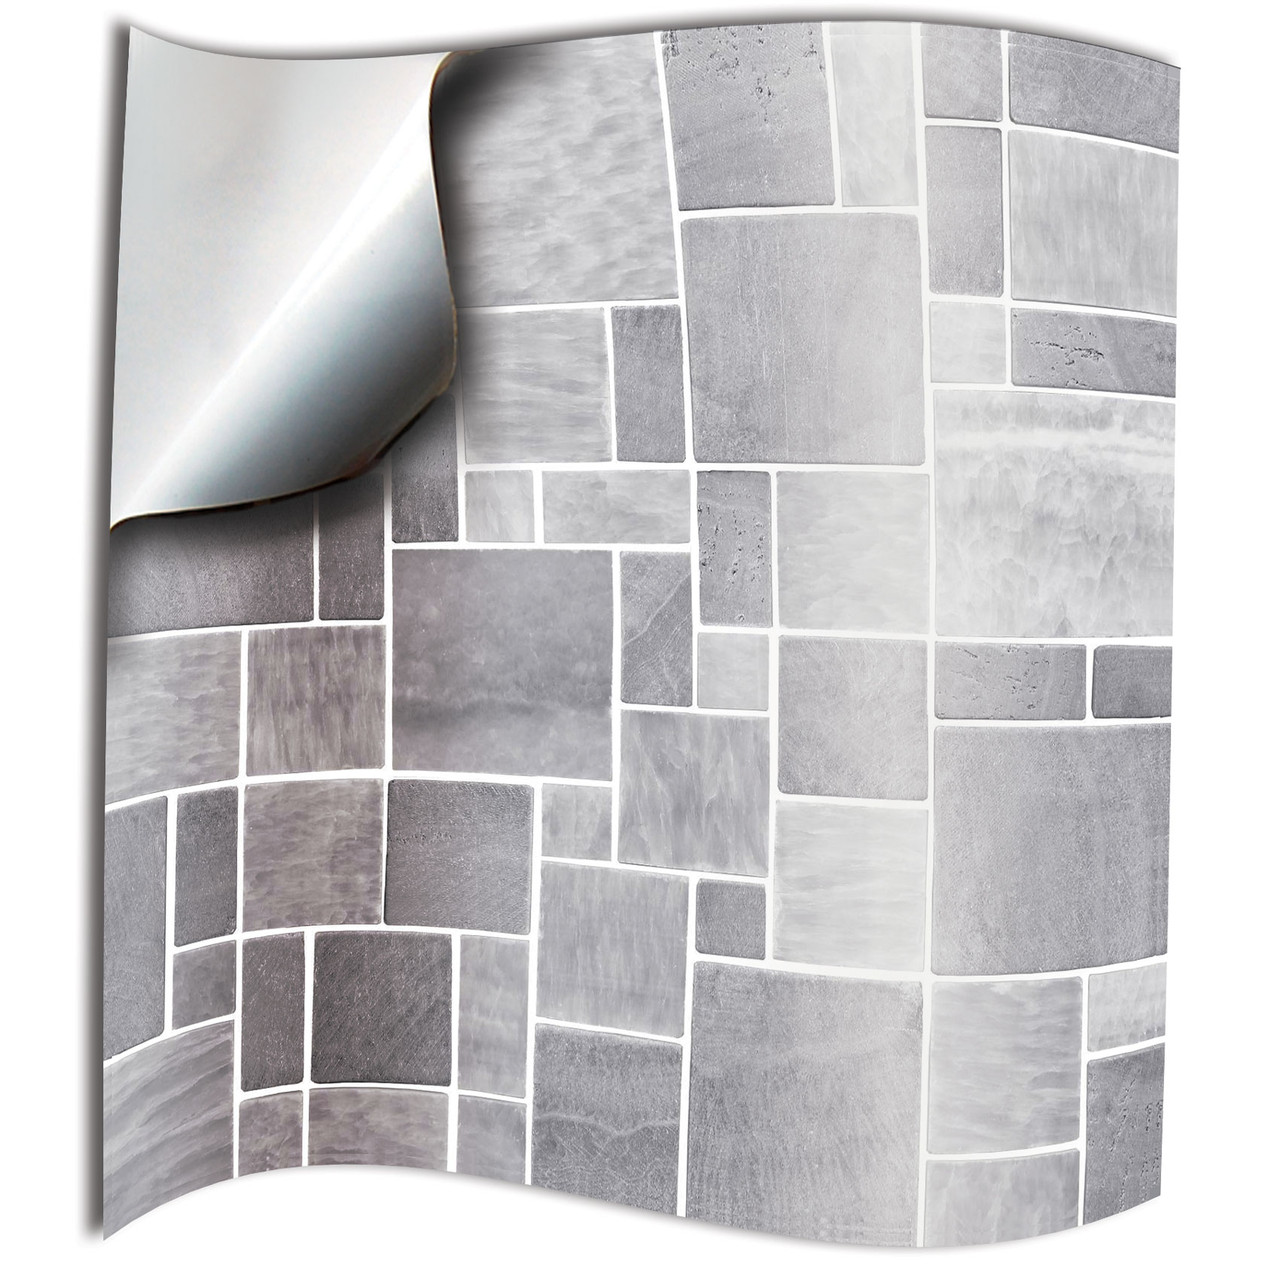 24 Light Grey Printed In 2d Kitchen Bathroom Tile Stickers For 6